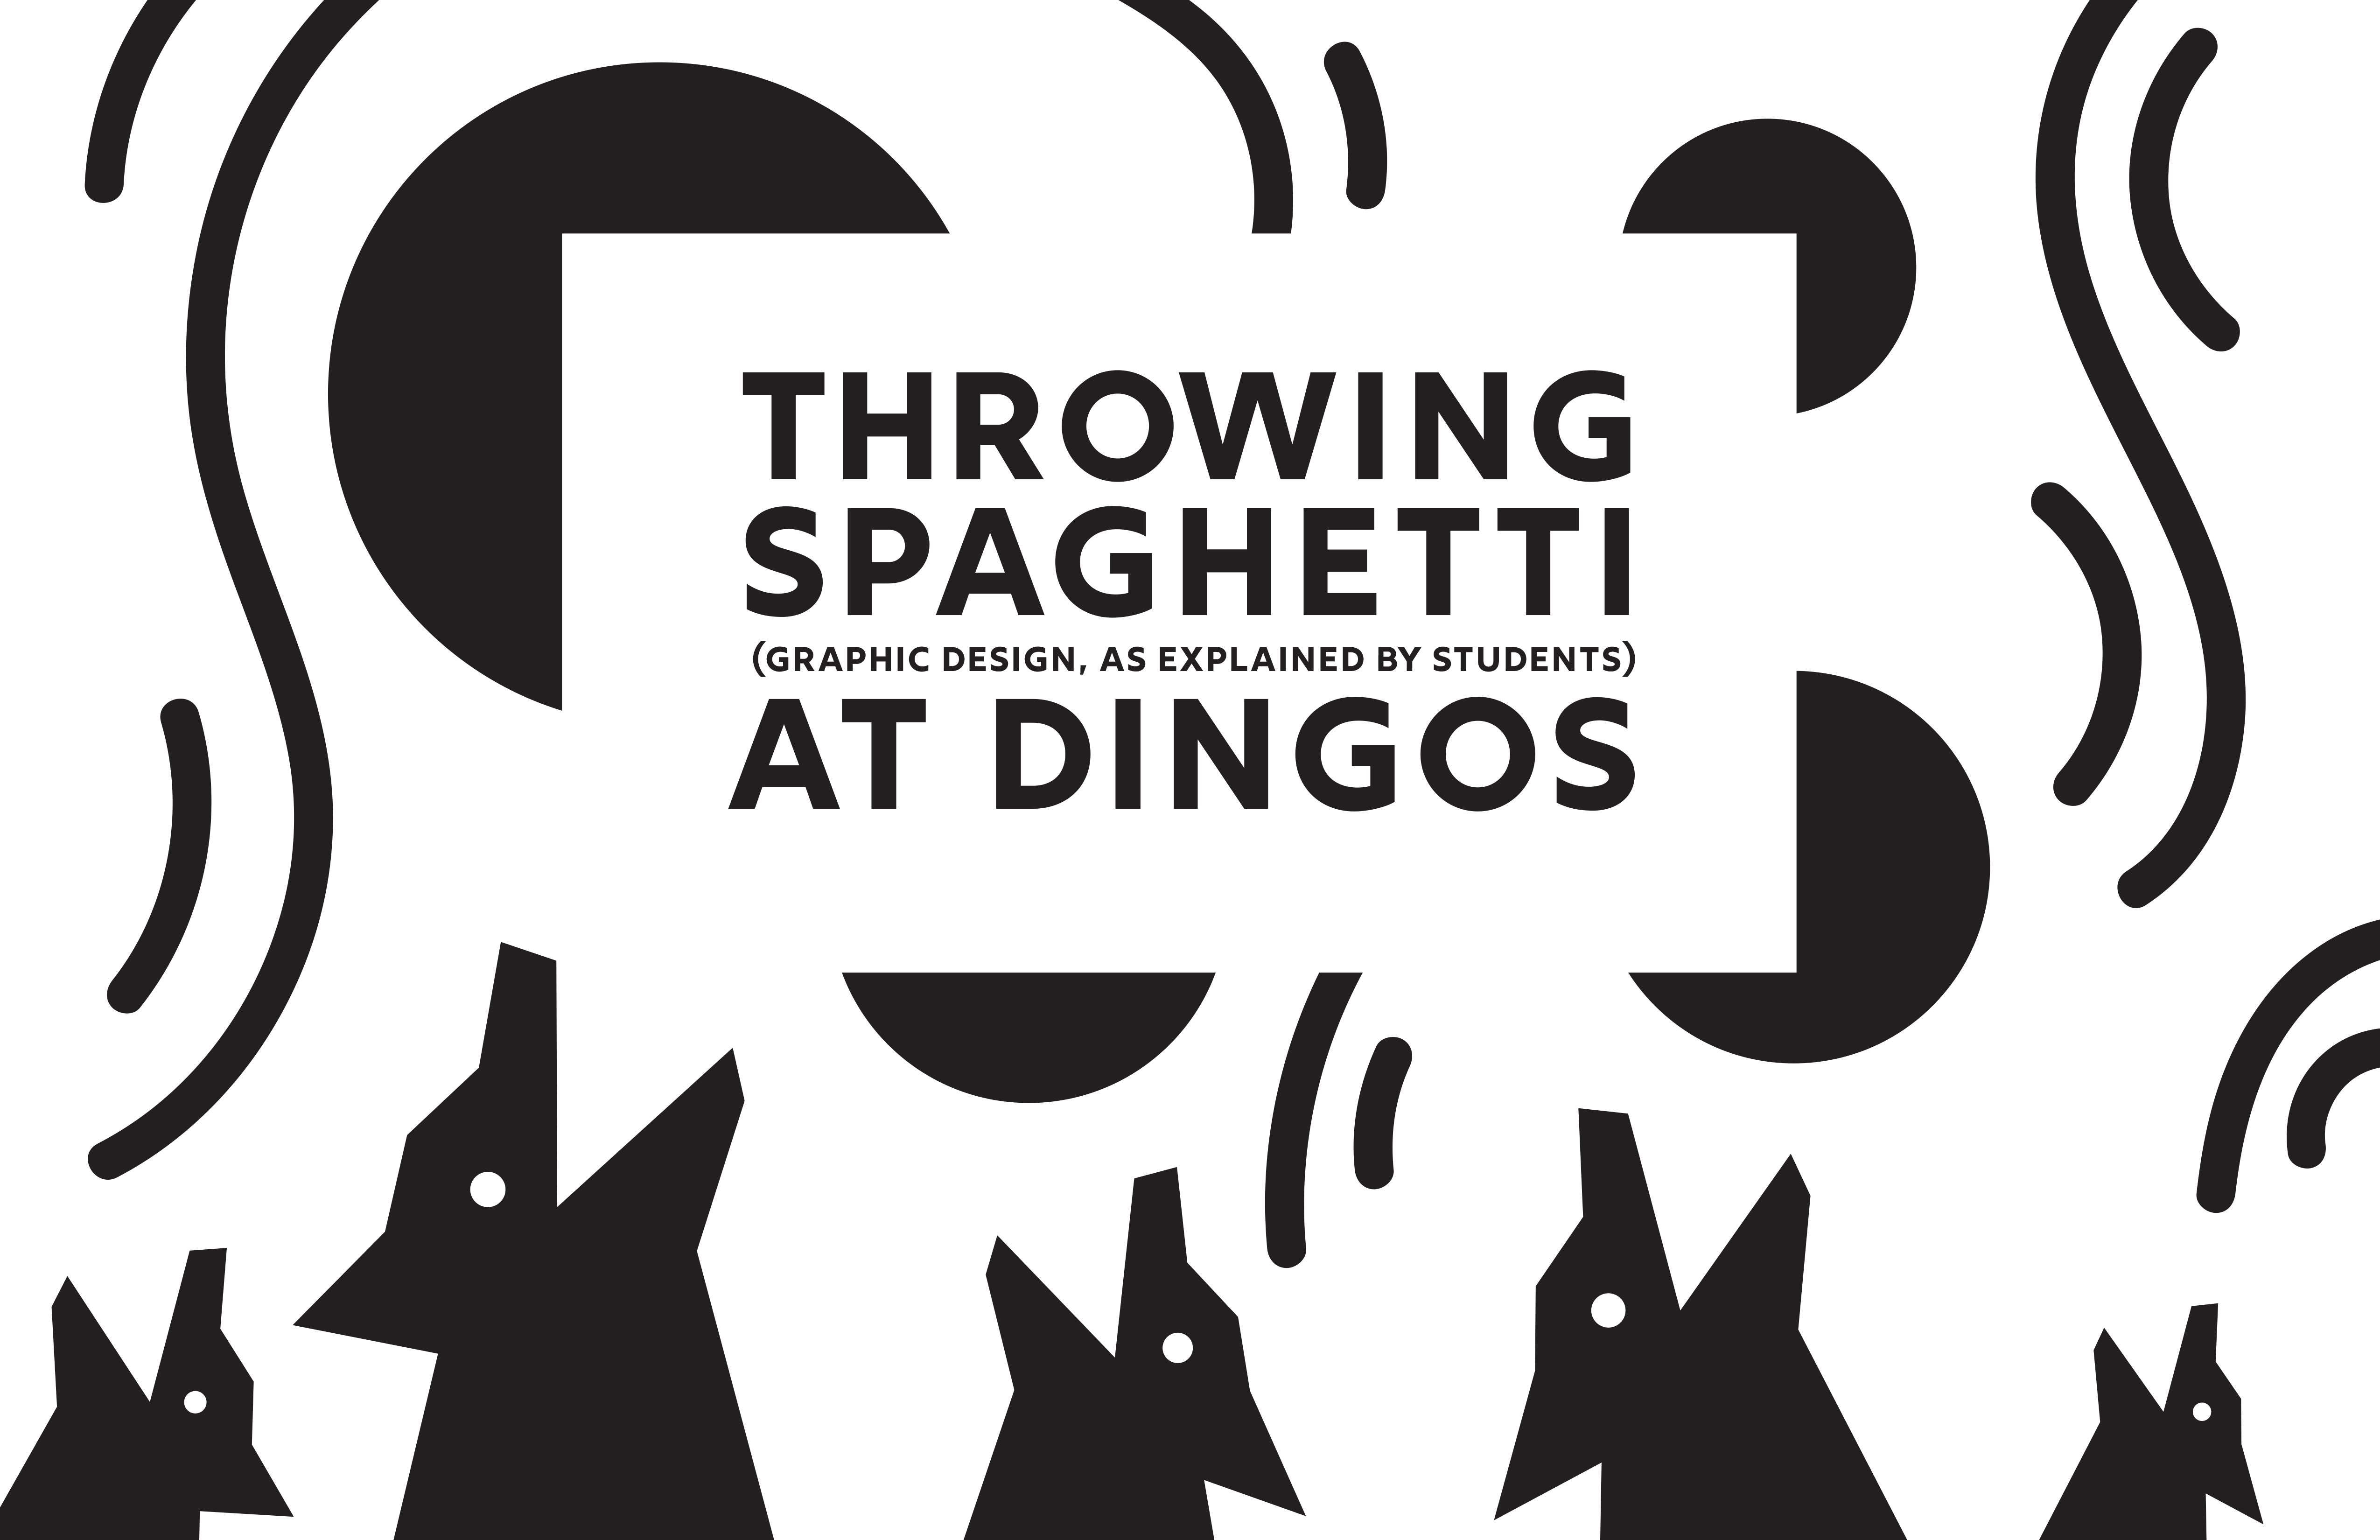 Throwing Spaghetti at Dingos (Graphic design, as explained by students)